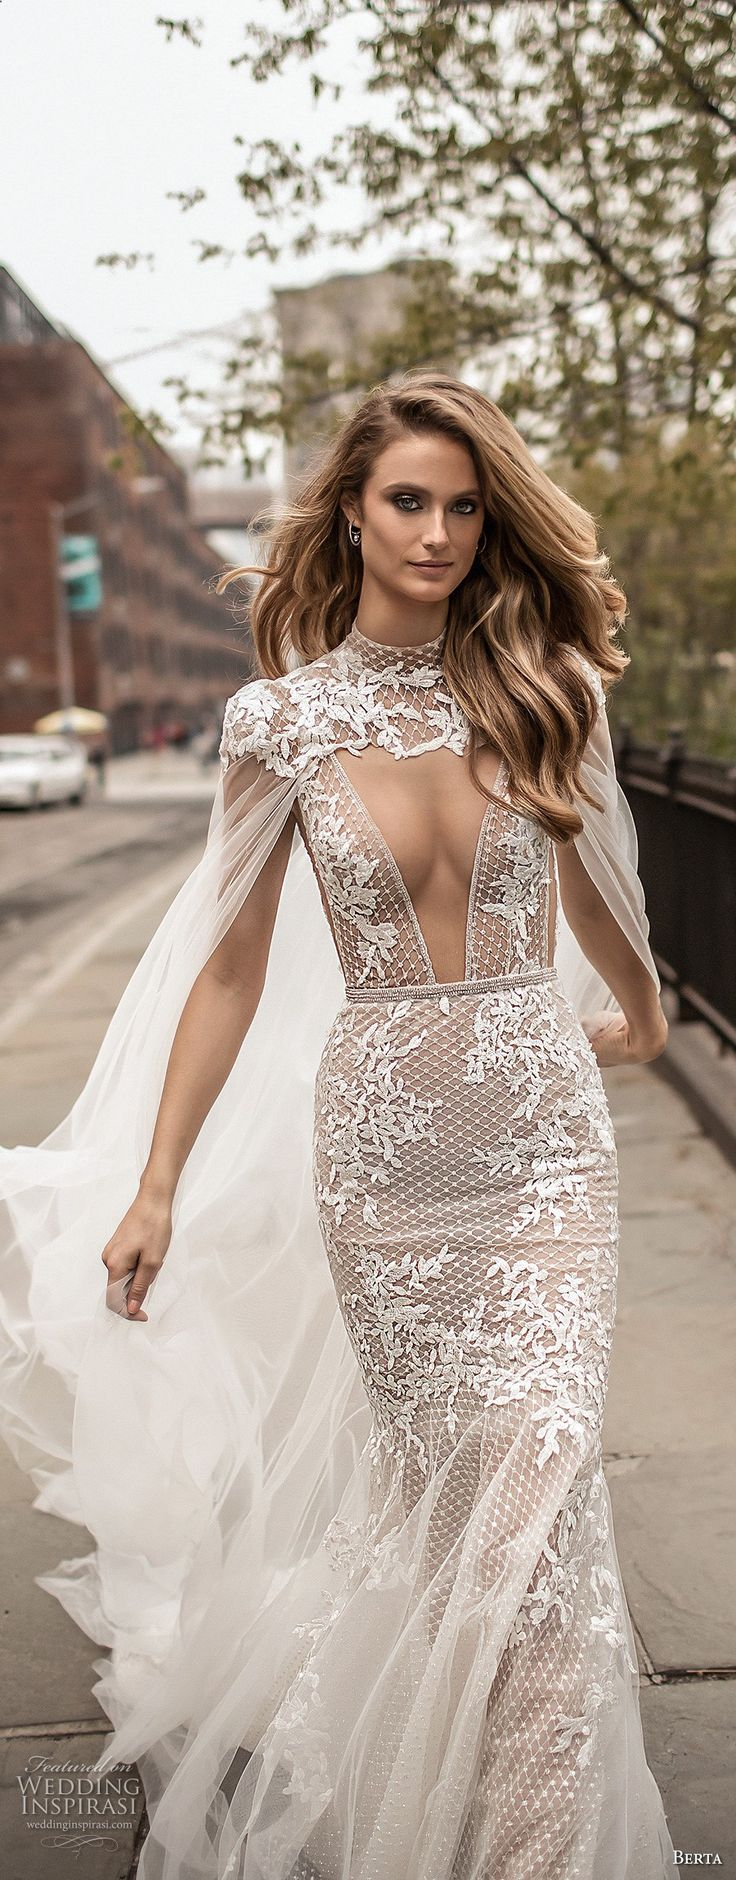 berta spring 2018 bridal thin strap deep plunging v neck full embellishment elegant sexy fit and flare wedding dress cape open back chapel train (15) mv -- Berta Spring 2018 Wedding Dresses